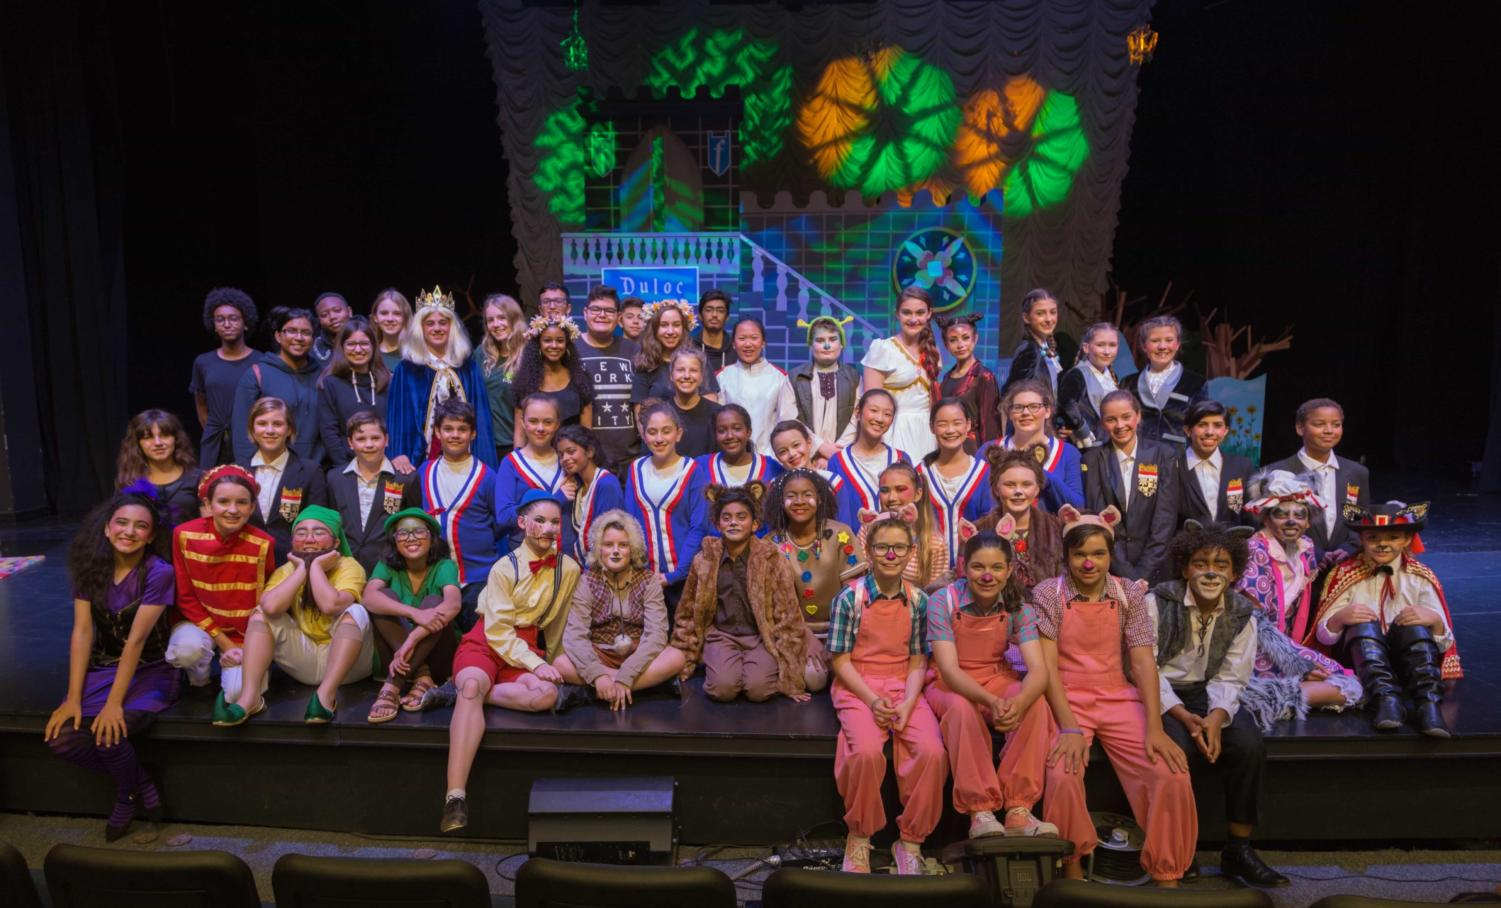 The entire cast of Shrek Jr. obviously enjoyed the experience of bringing to life the whimsical anti-fairy tale story through acting, song and dance.